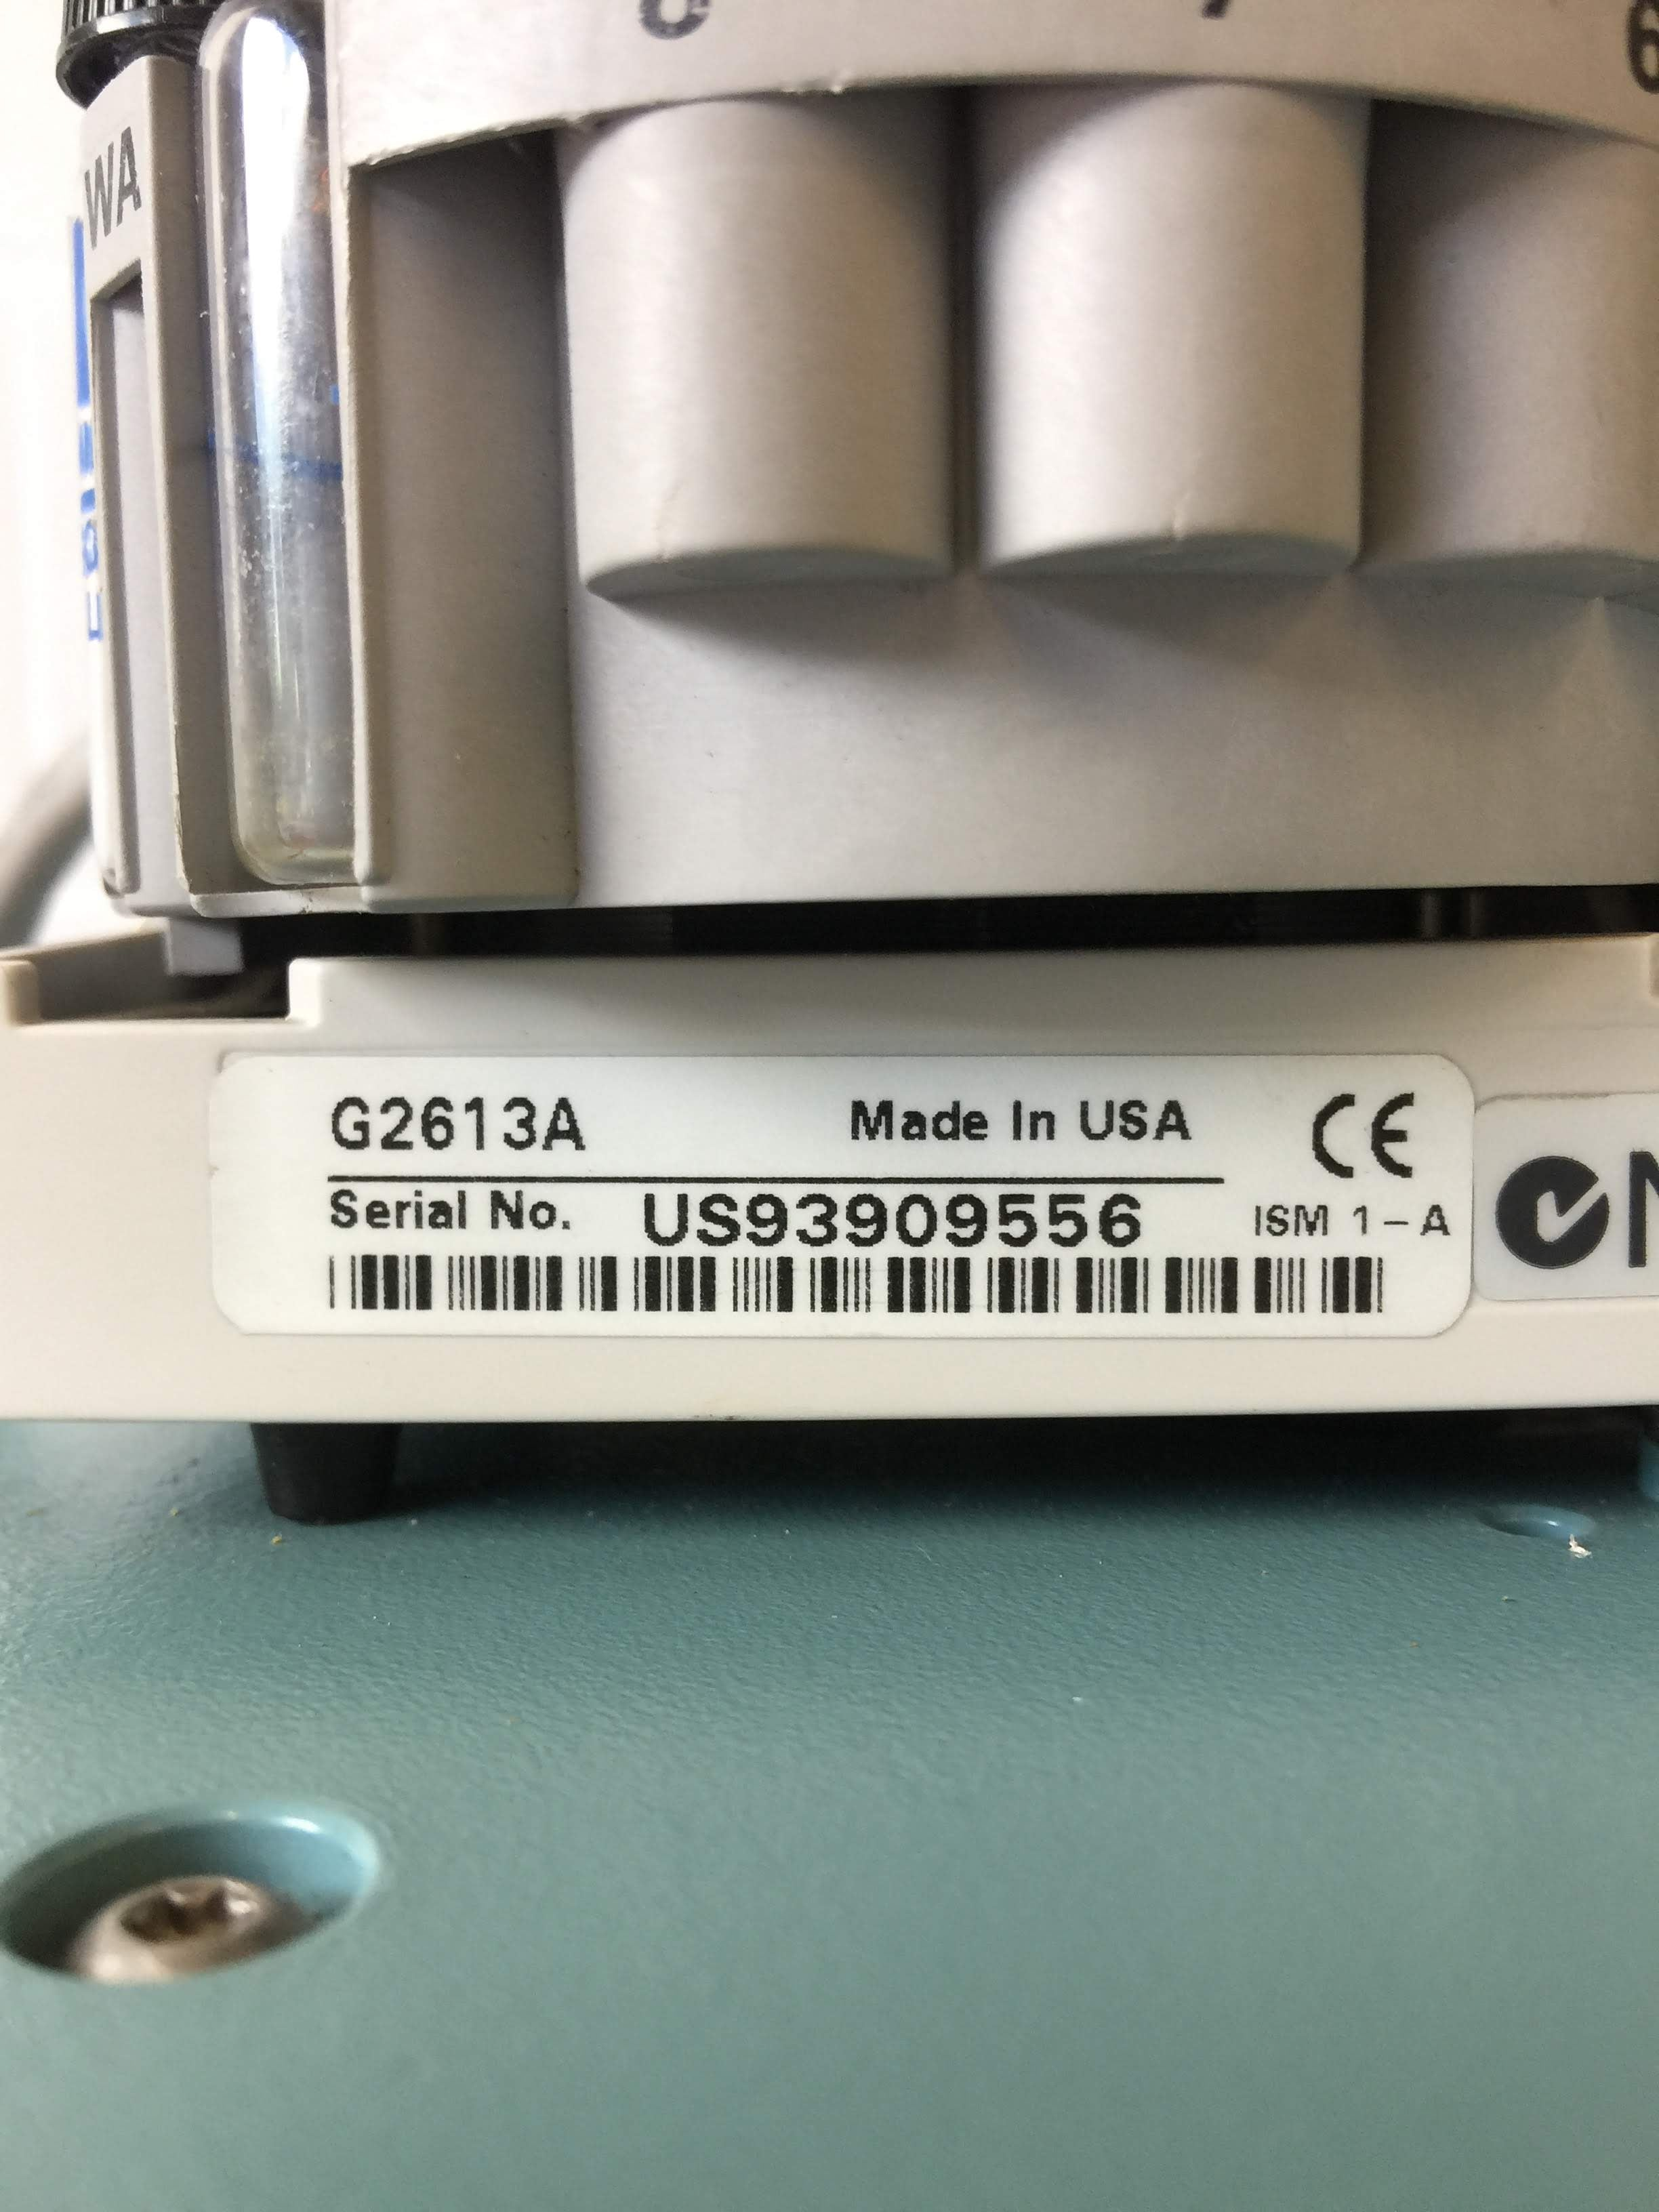 G2163A Made in USA